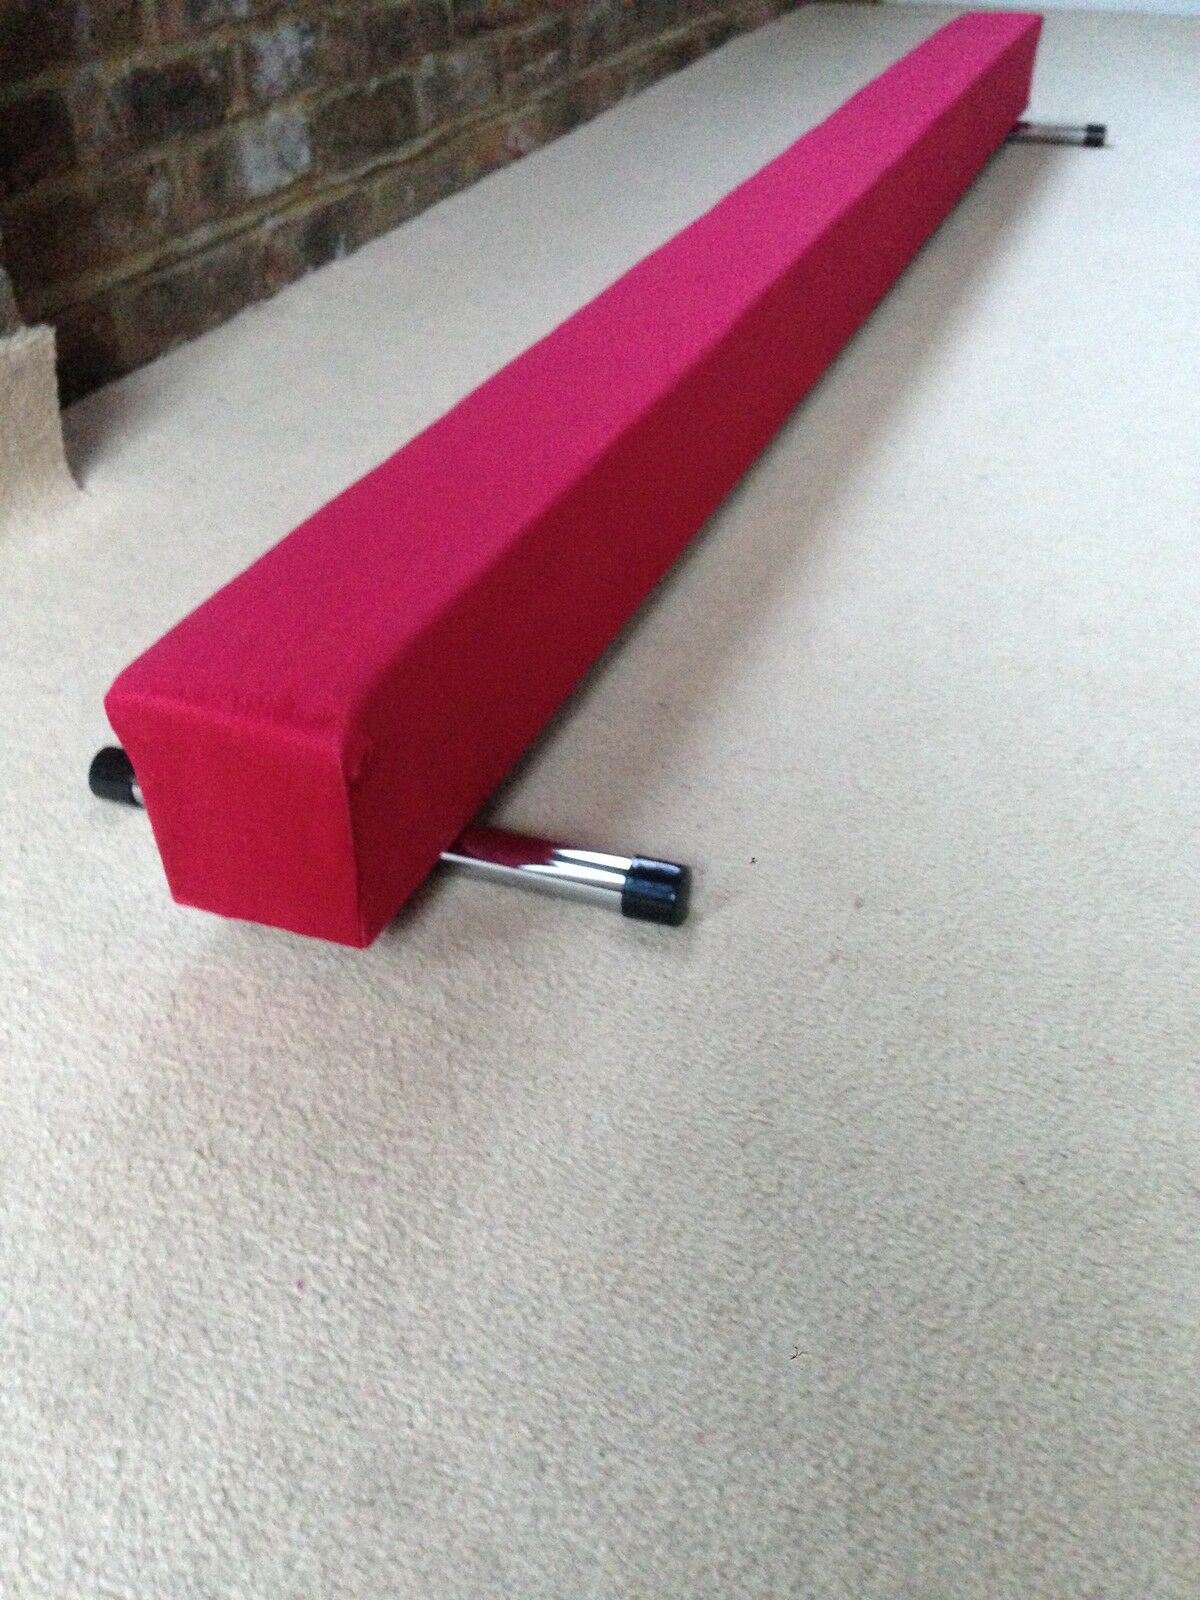 Finest quality gymnastics gym balance beam  7FT long red reduced bargain